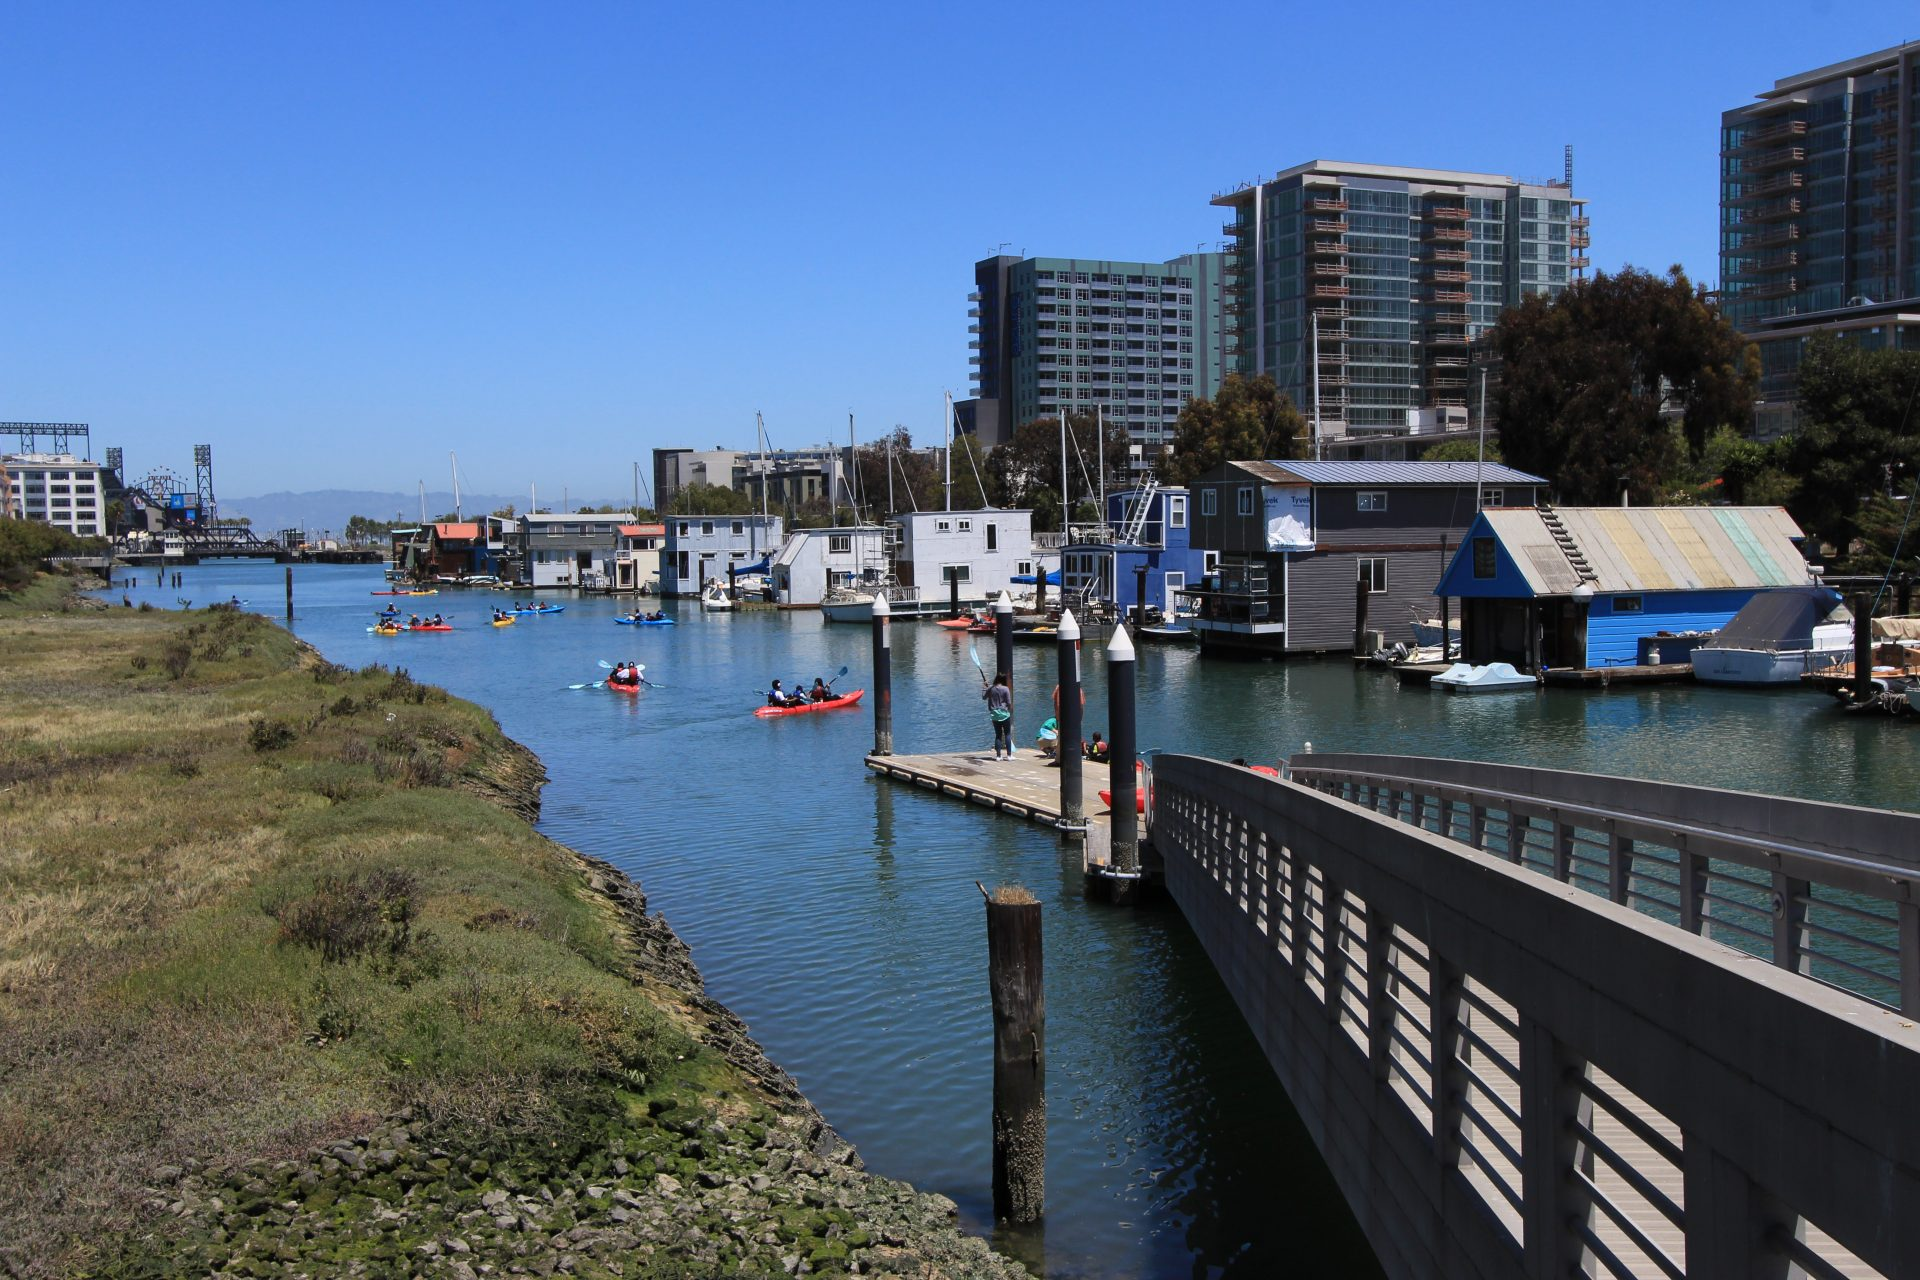 Narrow channel with many color kayaks, and grassy meadow on left and houseboats on right. A ramp descends to a floating dock